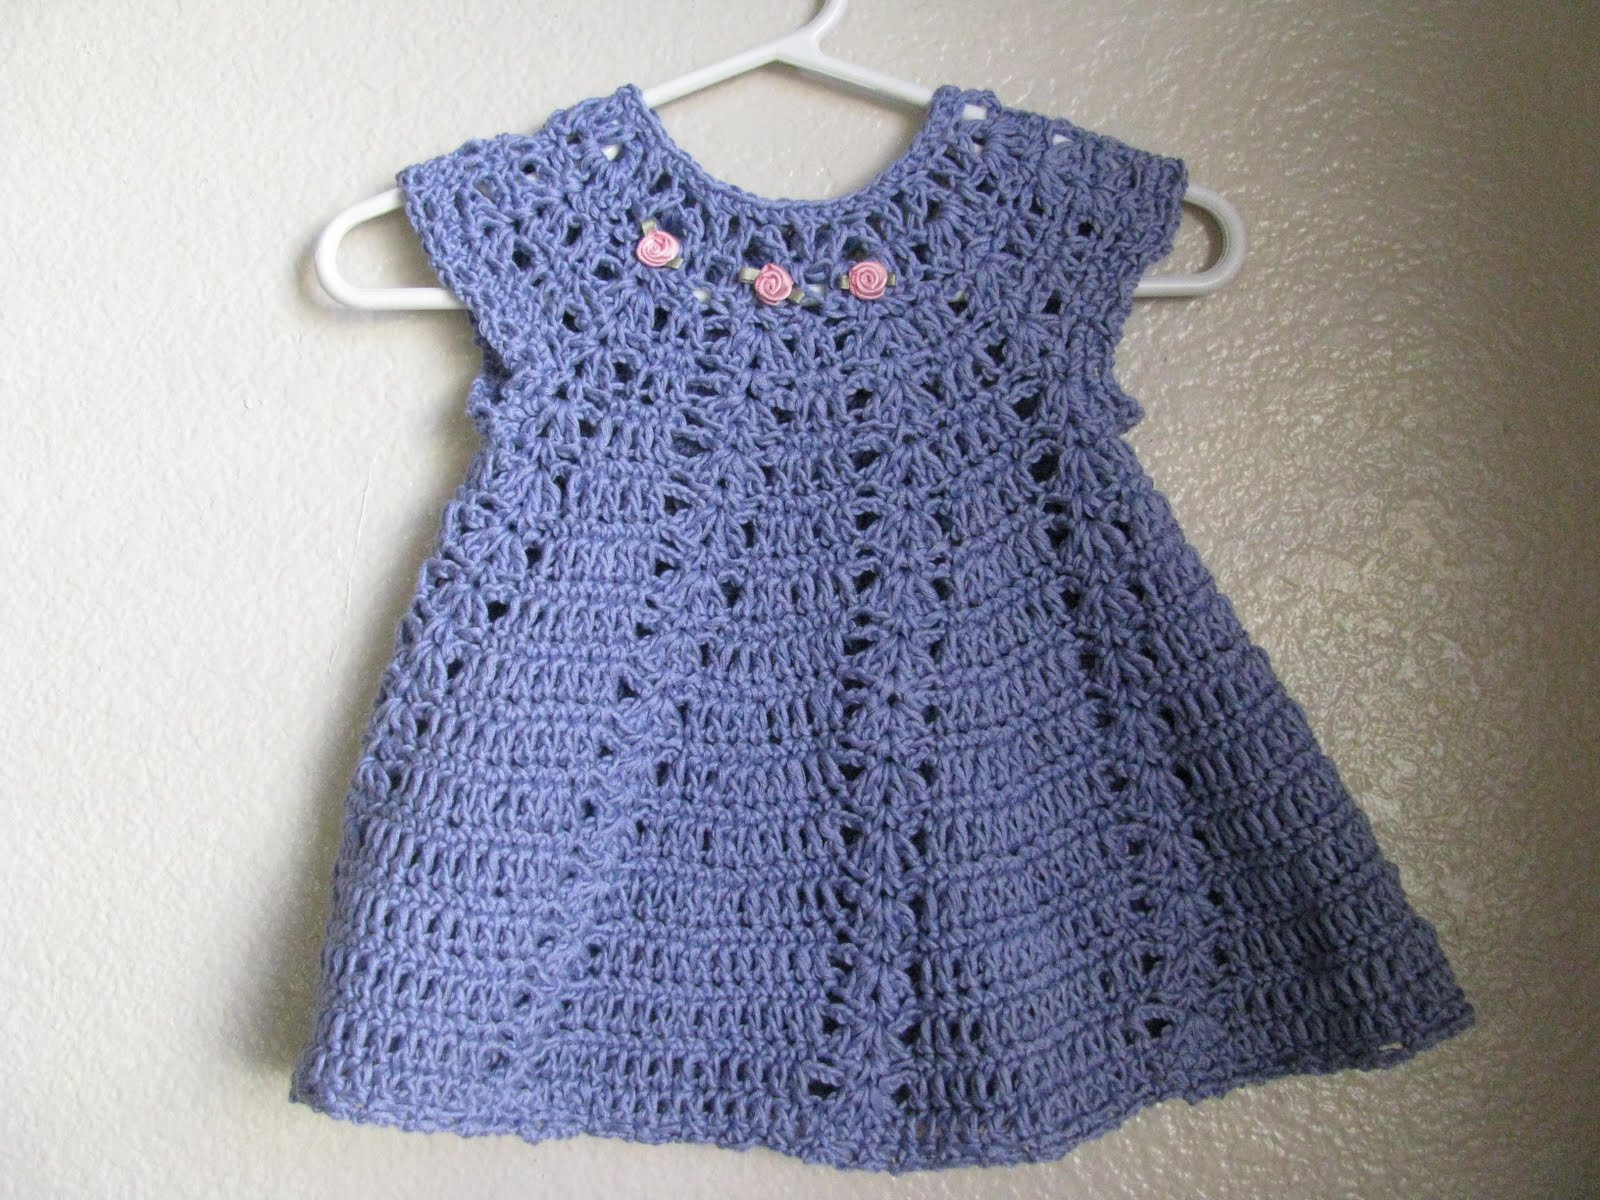 Free Crochet Patterns Baby Clothes Unique My Latest Project My First Crocheted Baby Dress Finished Of Awesome 40 Images Free Crochet Patterns Baby Clothes